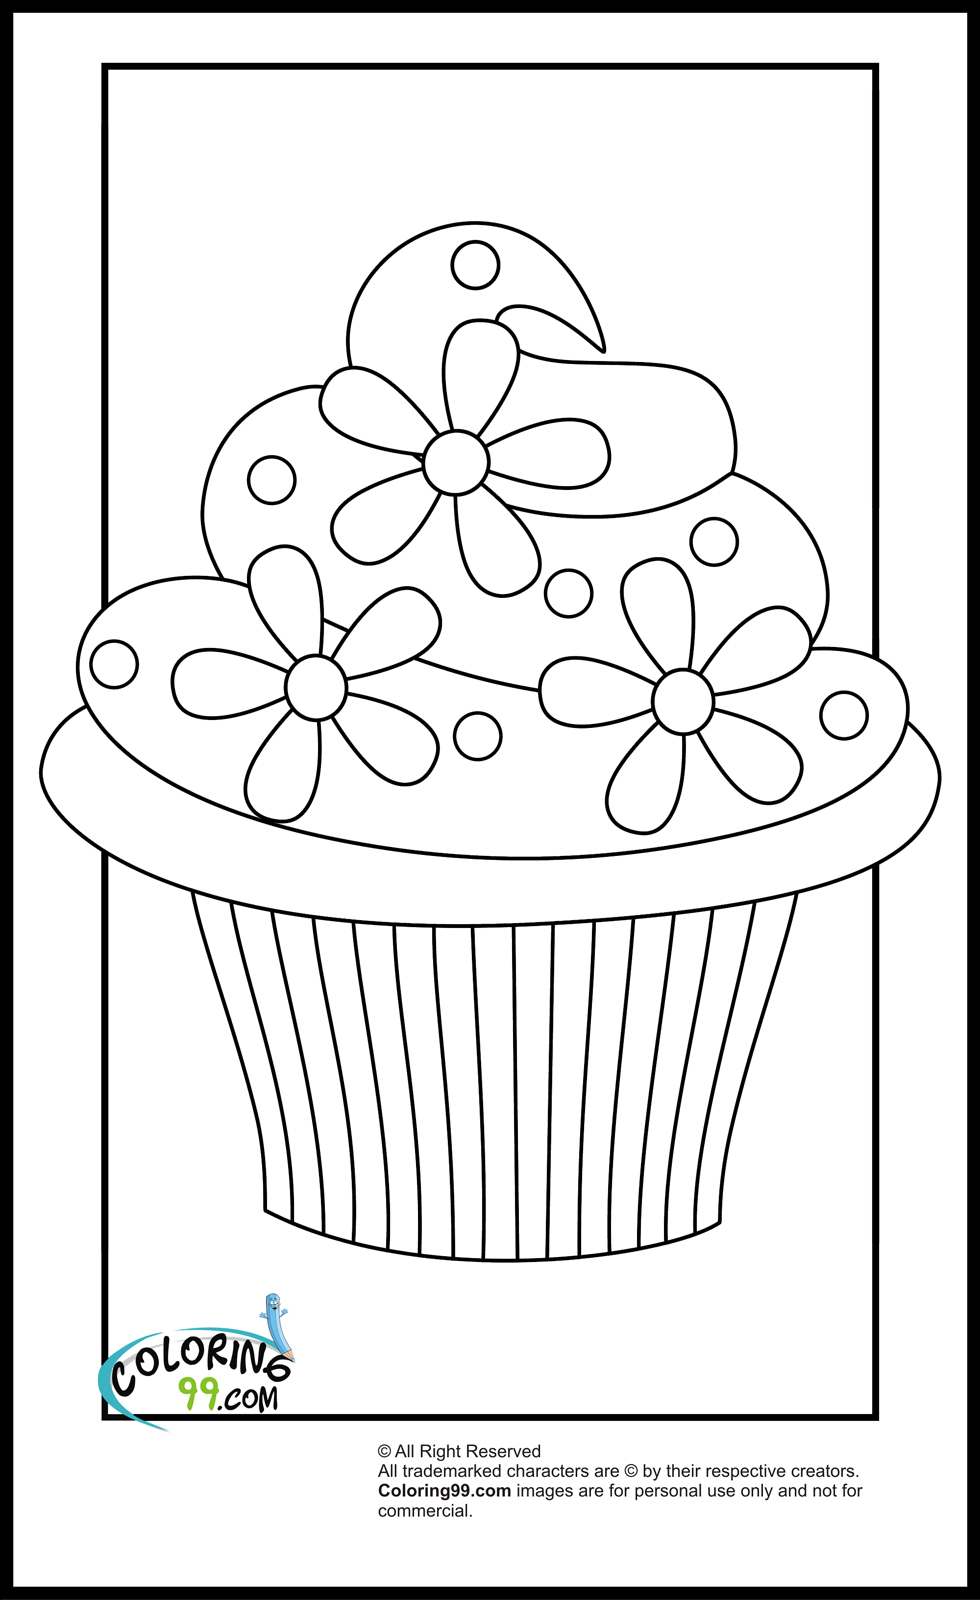 coloring worksheets for toddlers summer coloring pages for kids print them all for free toddlers for worksheets coloring